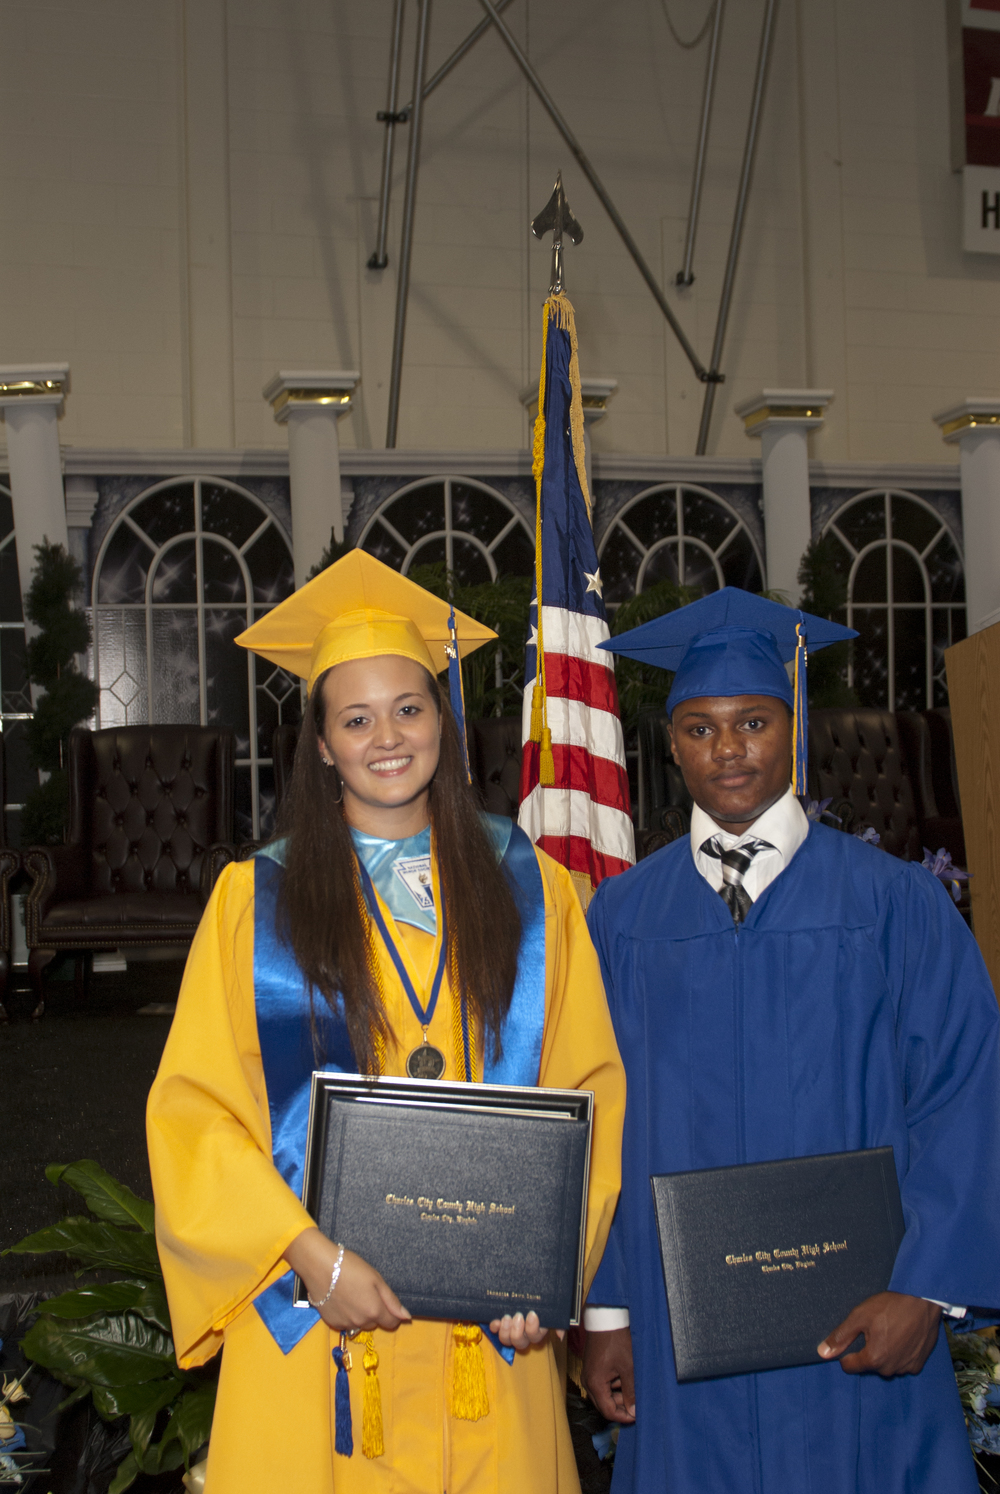 Charles City County High School 2011 Scholarship Recipients, Tevin Adkins and Samantha Spires, at their graduation.